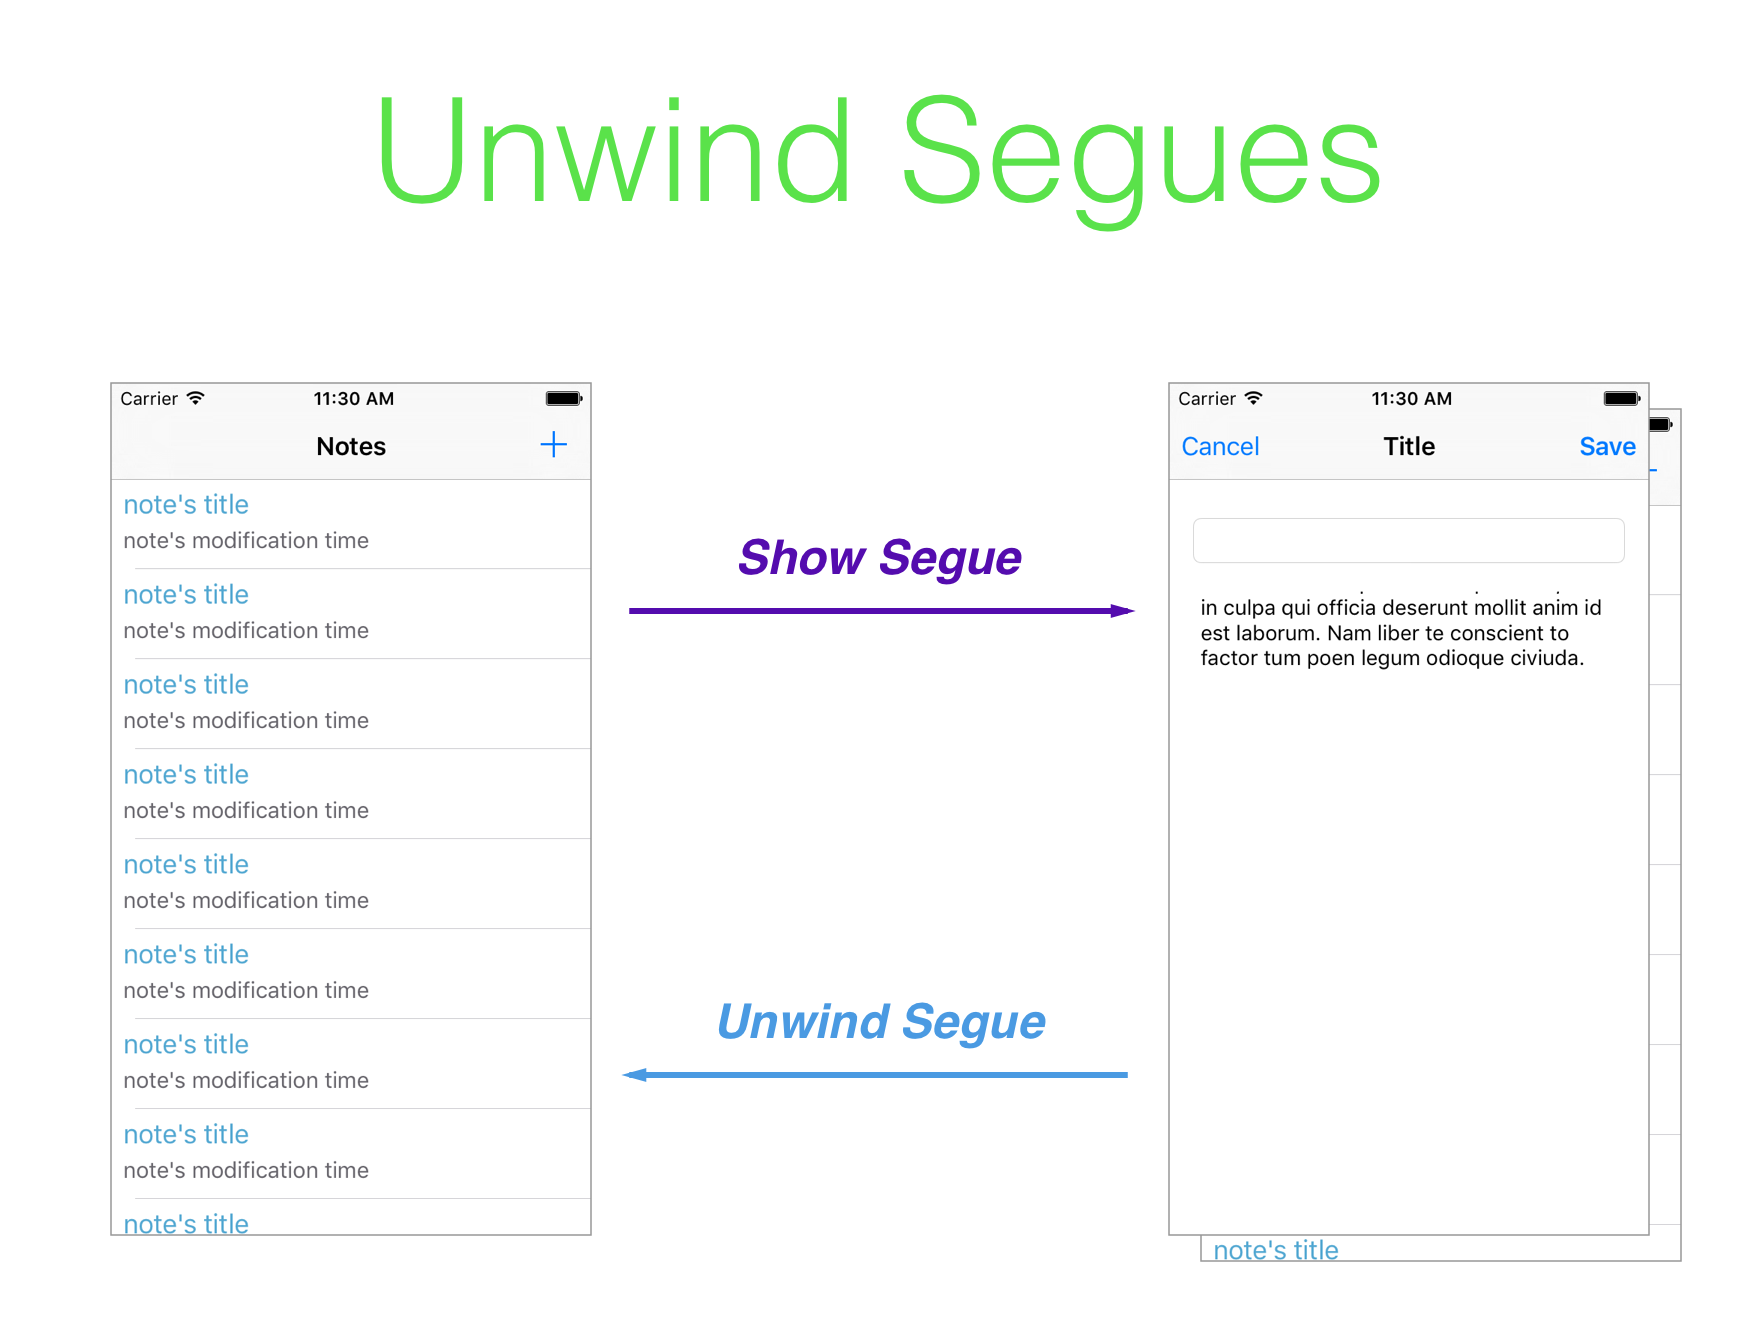 image showing unwind segue with notes app